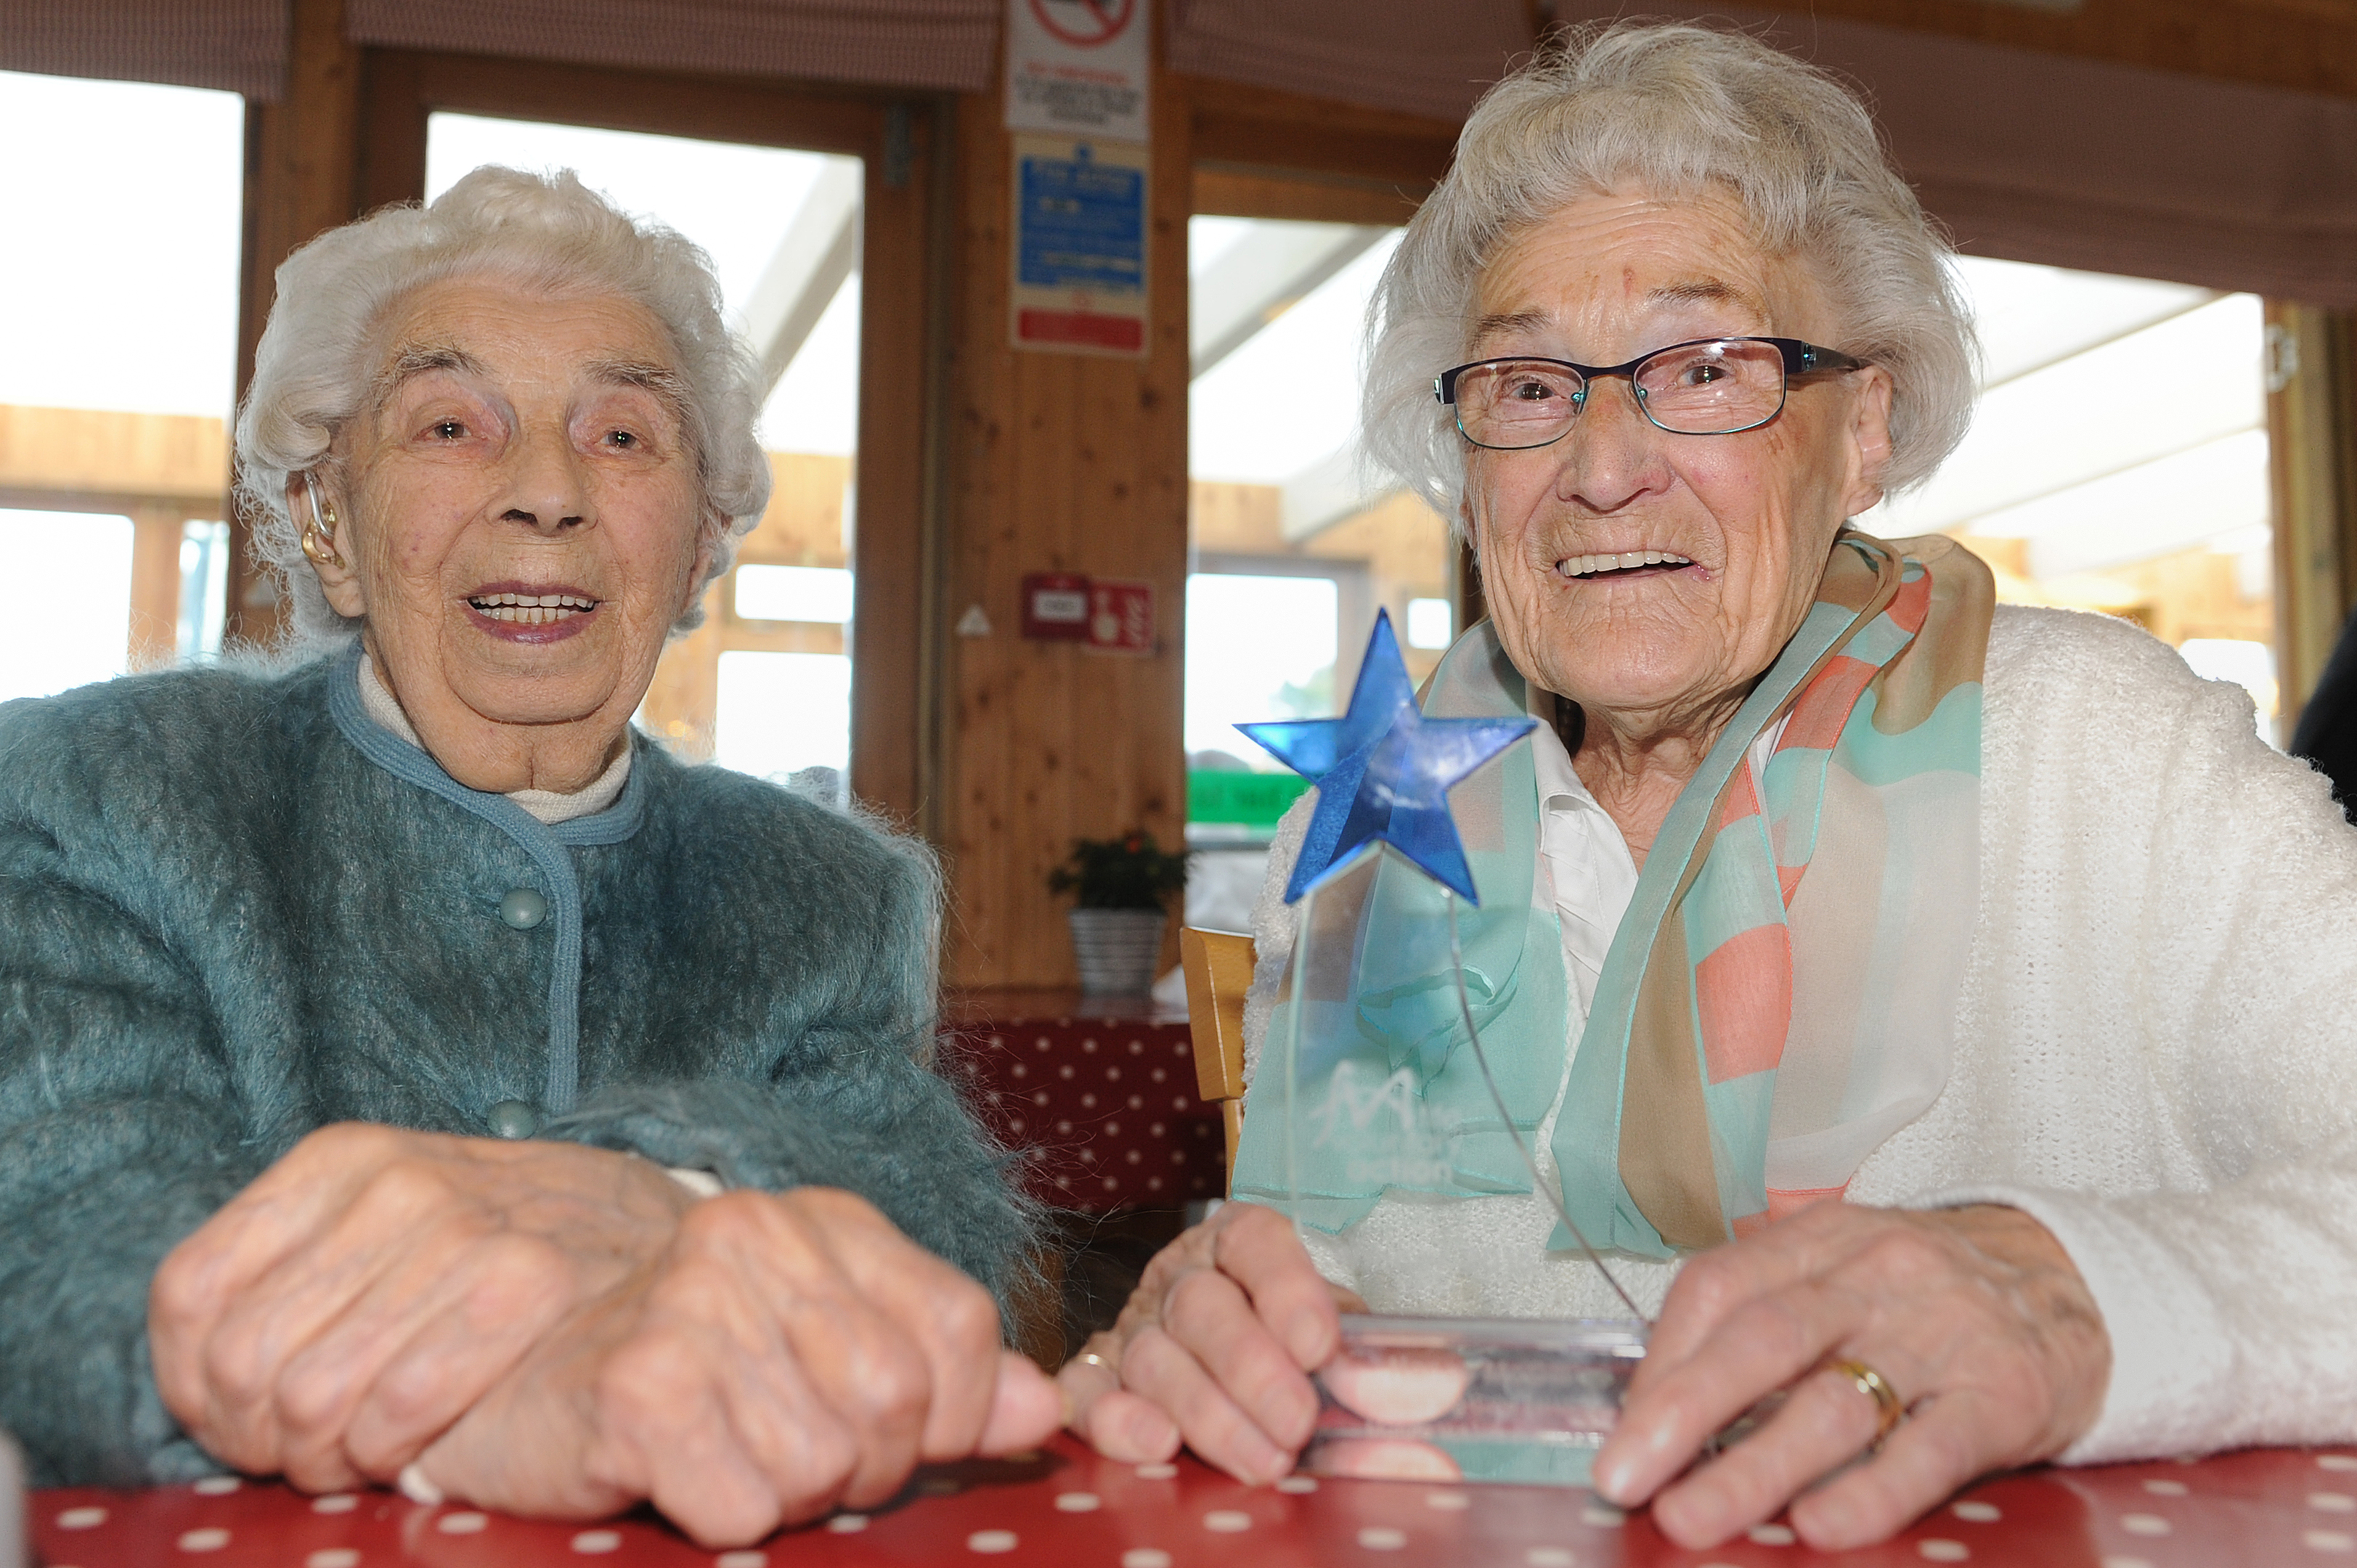 Nancy McGill, 94, (right) with Ethil McKay, 101